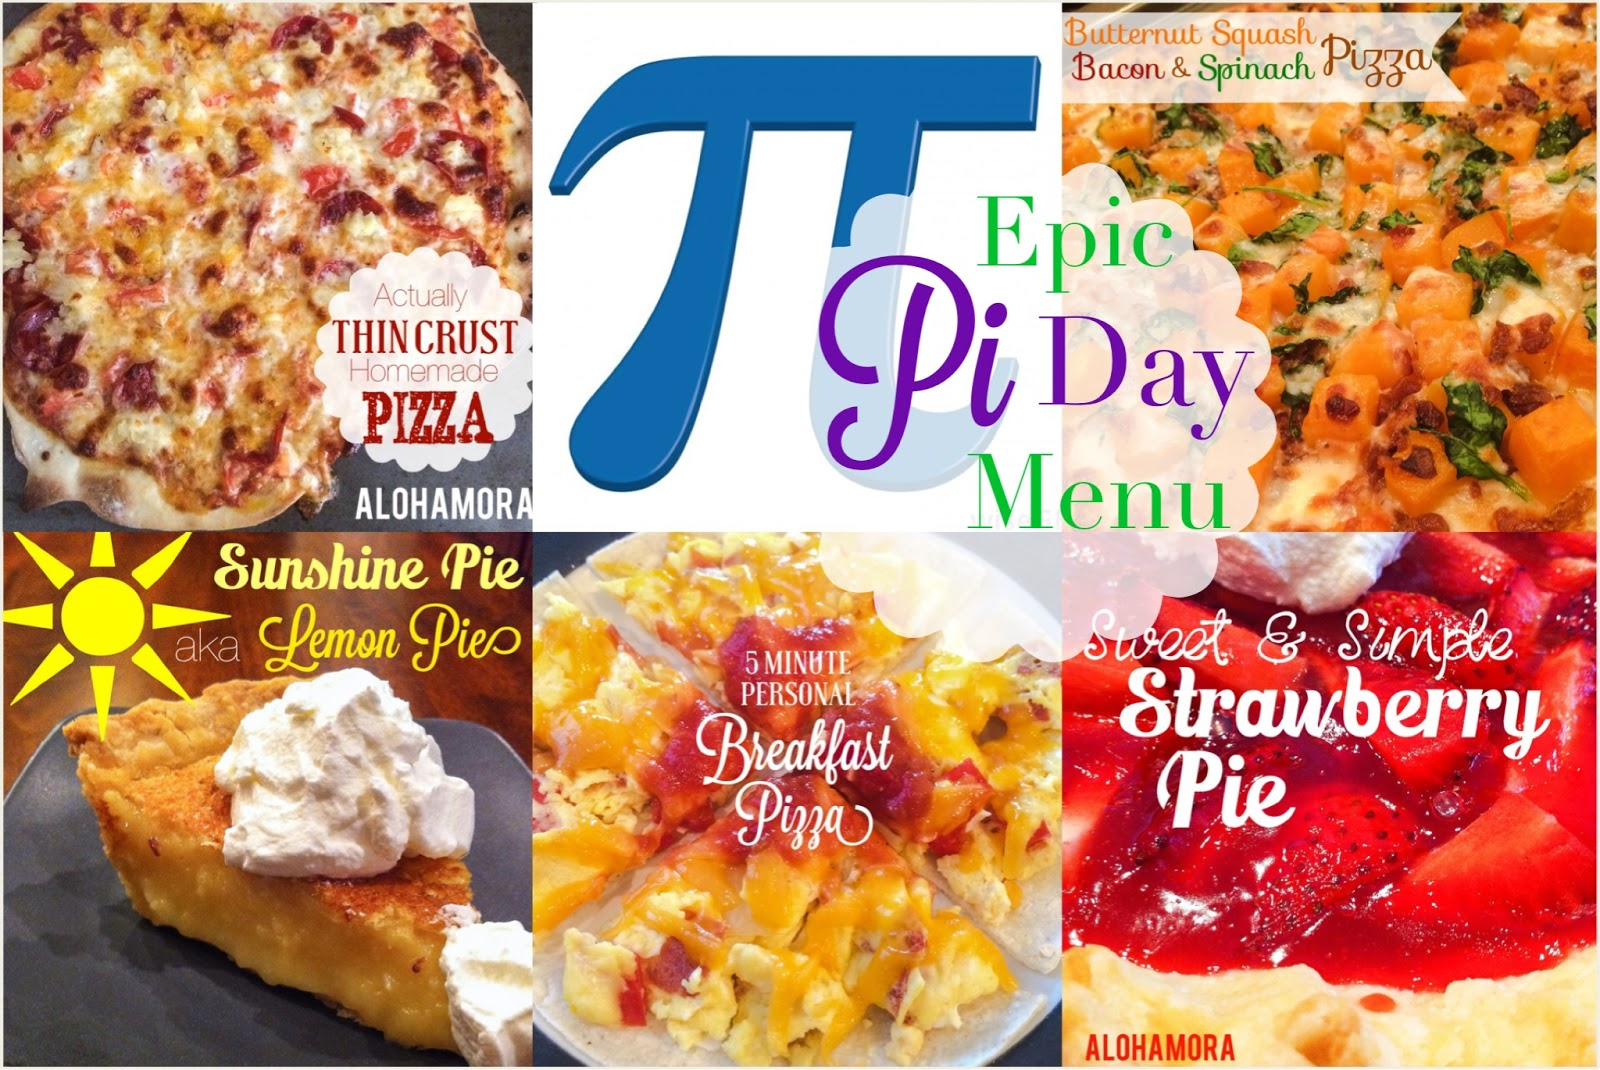 This Epic Pi Day Menu includes a quick and easy breakfast pizza, the best thin crust and pizza sauce recipe, butternut squash pizza, strawberry pie and lemon pie.  All delicious items you can quickly and easily make. Alohamora Open a Book http://www.alohamoraopenabook.blogspot.com/